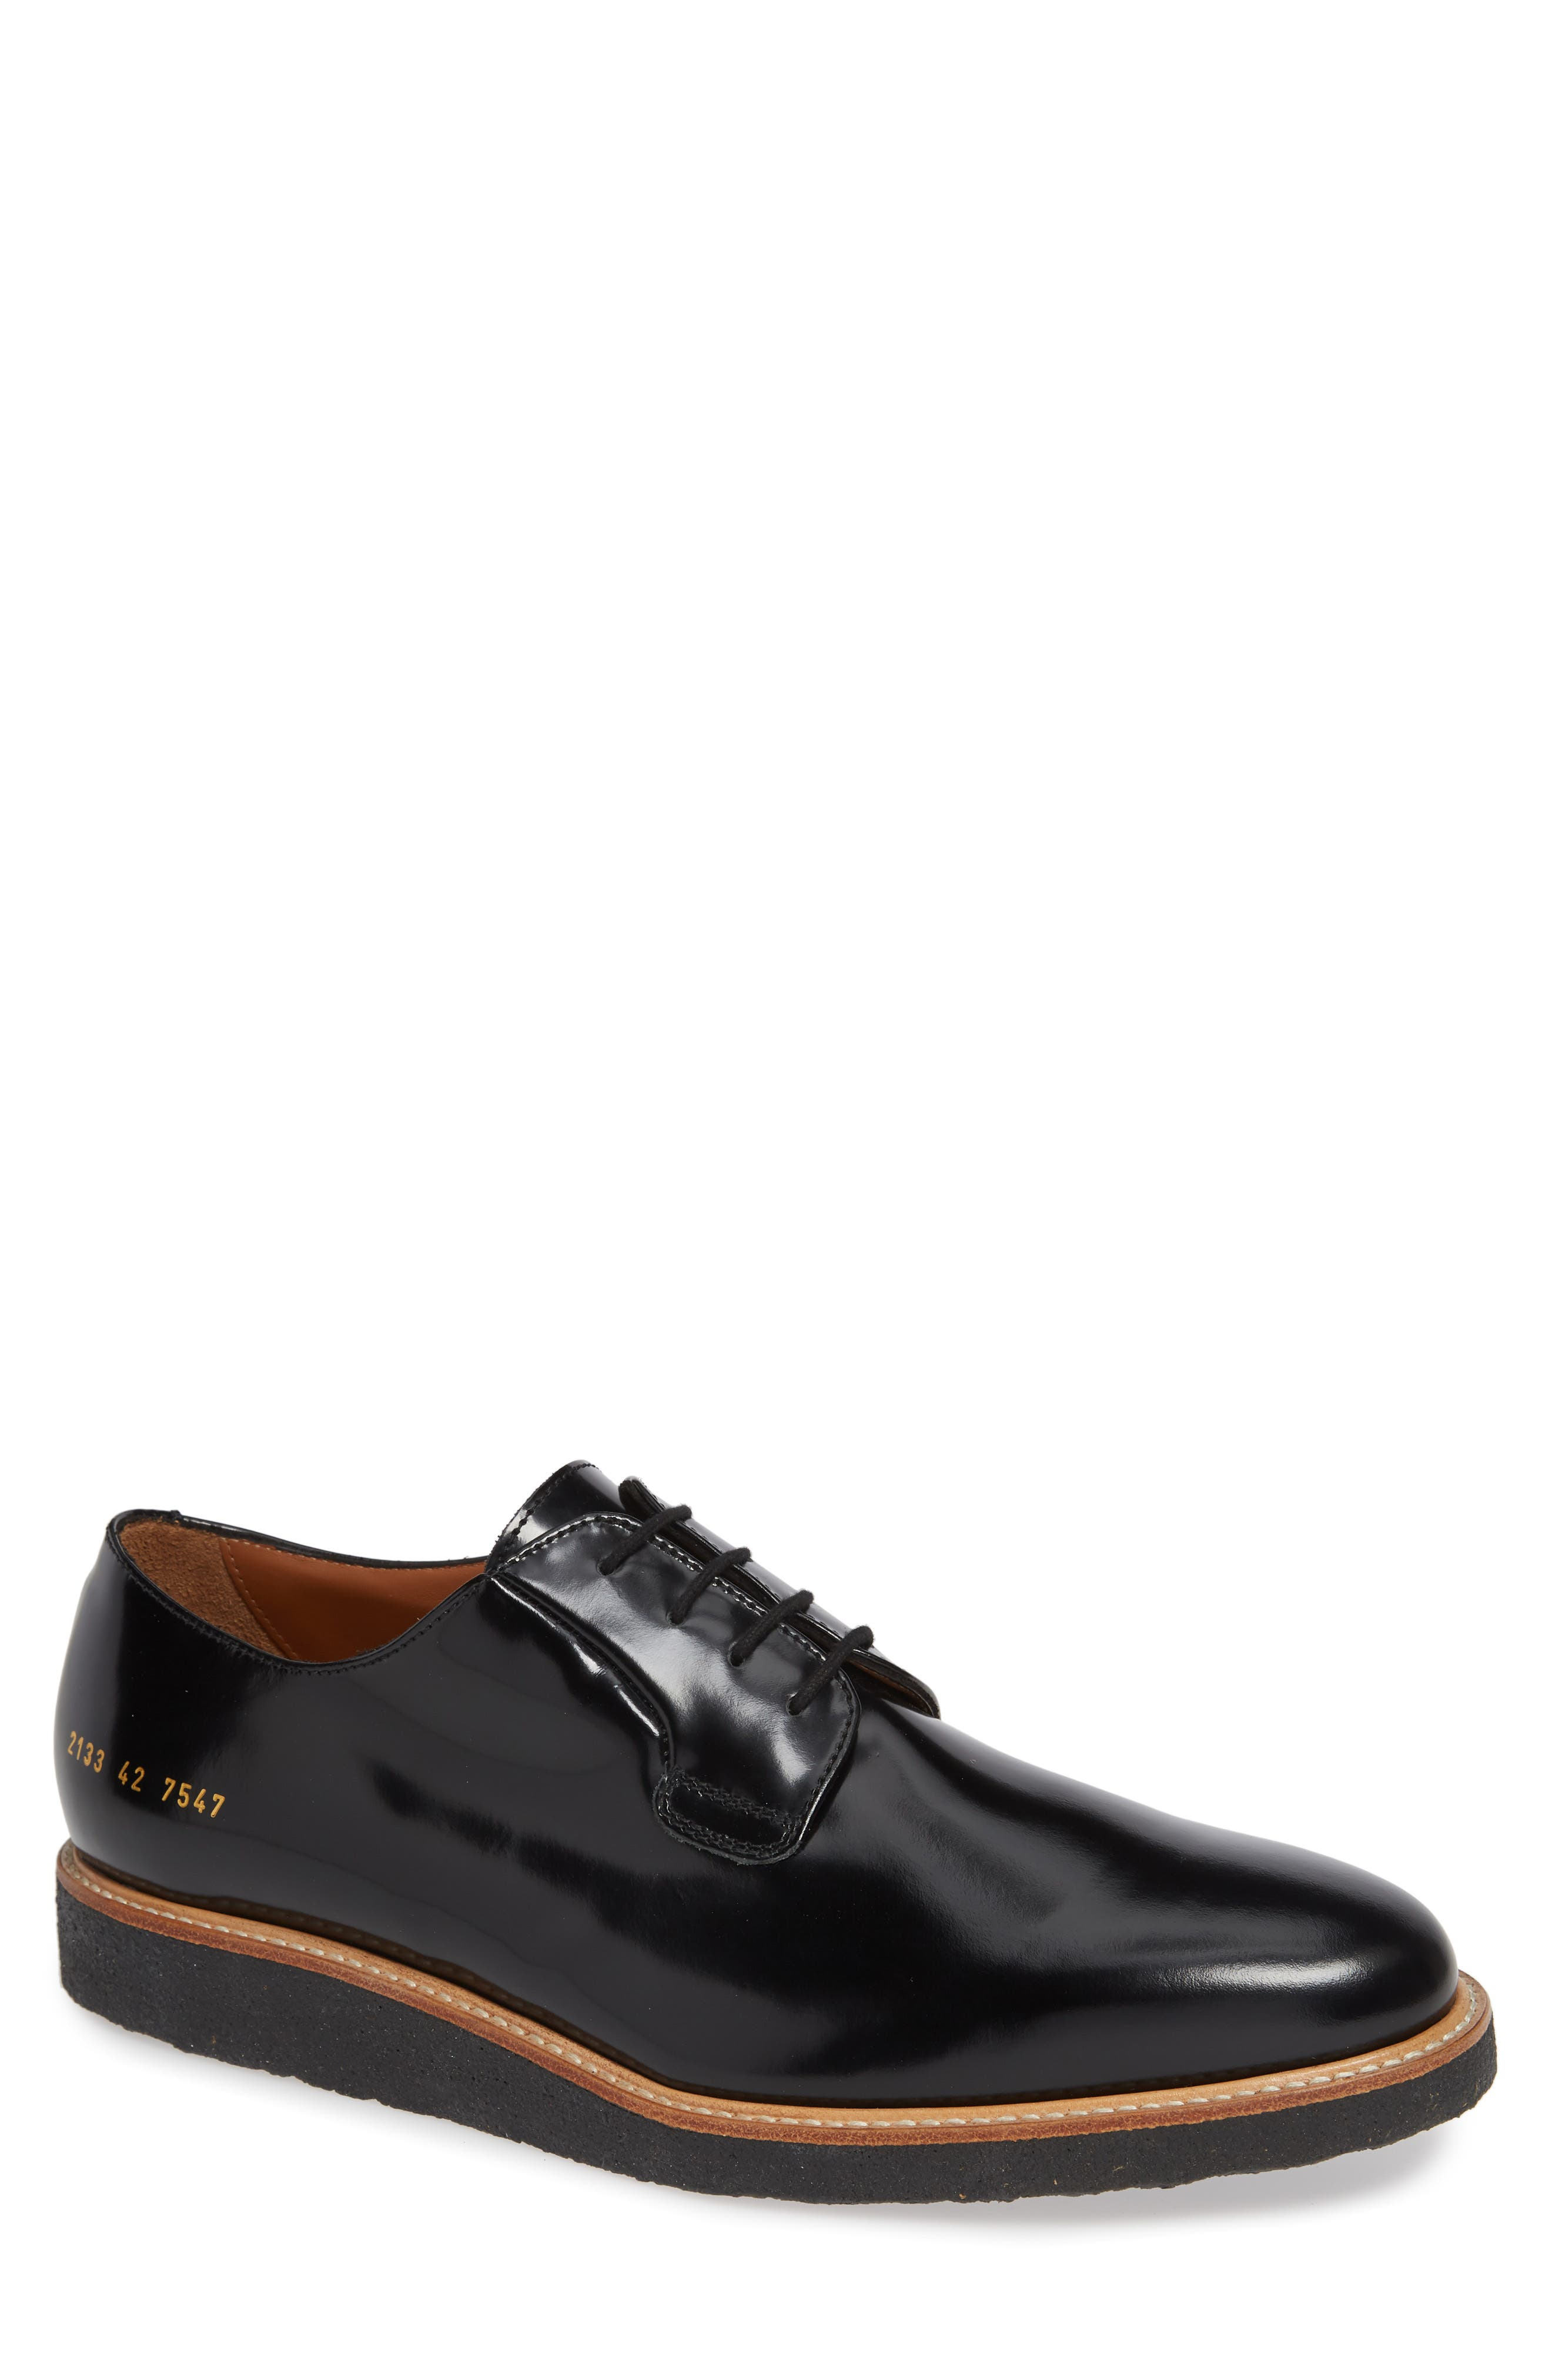 COMMON PROJECTS, Plain Toe Derby, Main thumbnail 1, color, BLACK SHINE